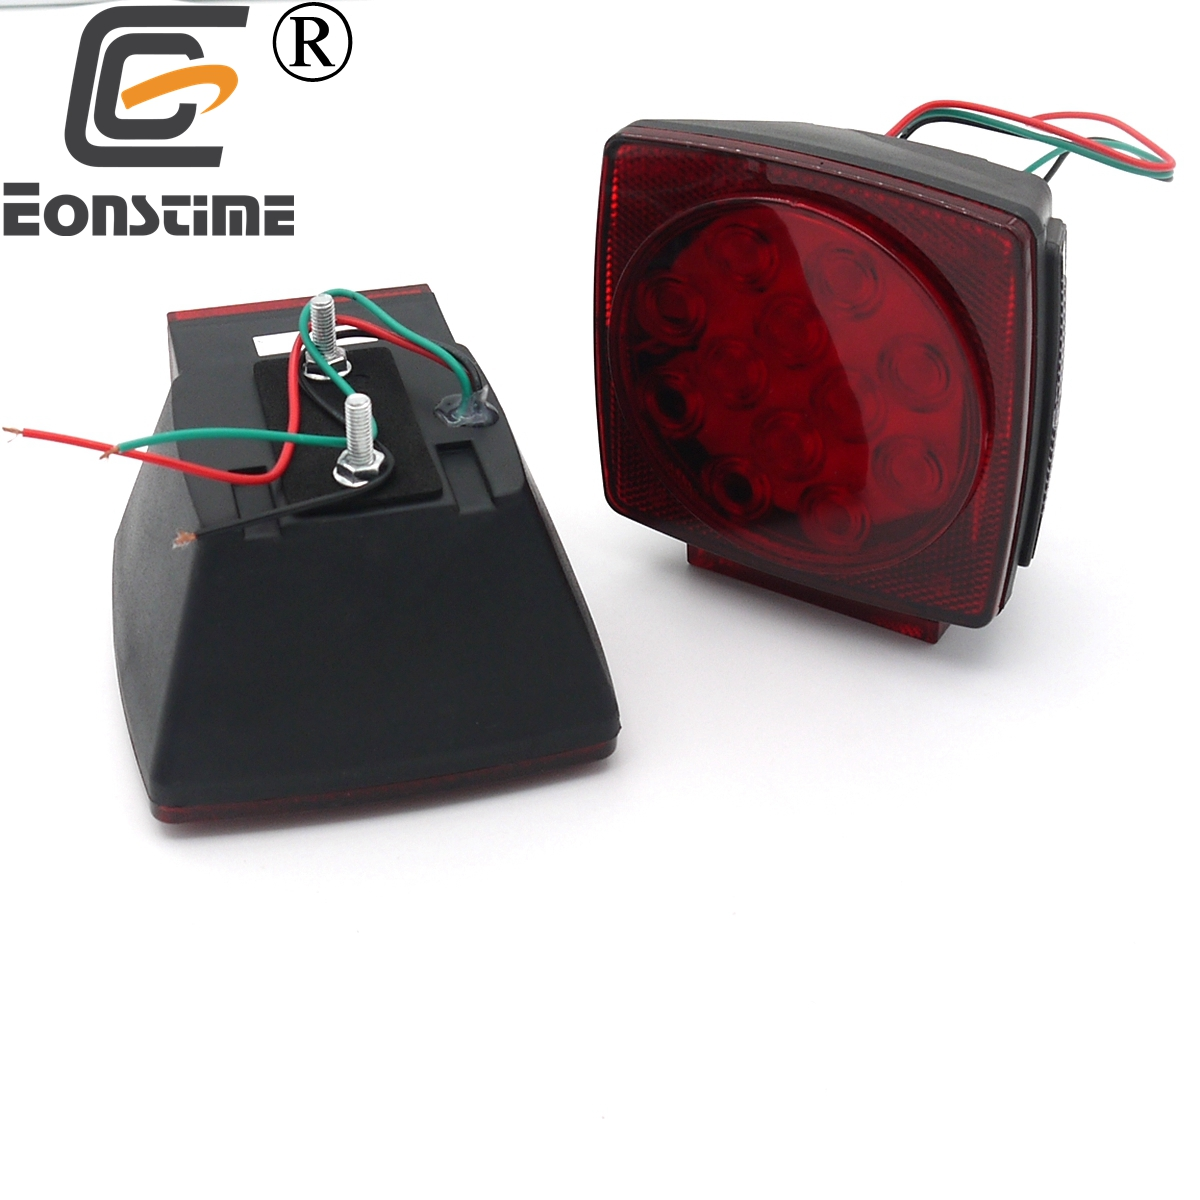 Eonstime 2pcs 12V Red/White Car LED Rear Stop Tail Lights Camper Side Marker Truck Trailer Boat Brake License Light 2pcs 20 led car truck red amber white led trailer waterproof tail lights turn signal brake light stop rear lamp dc 12v cy798 cn